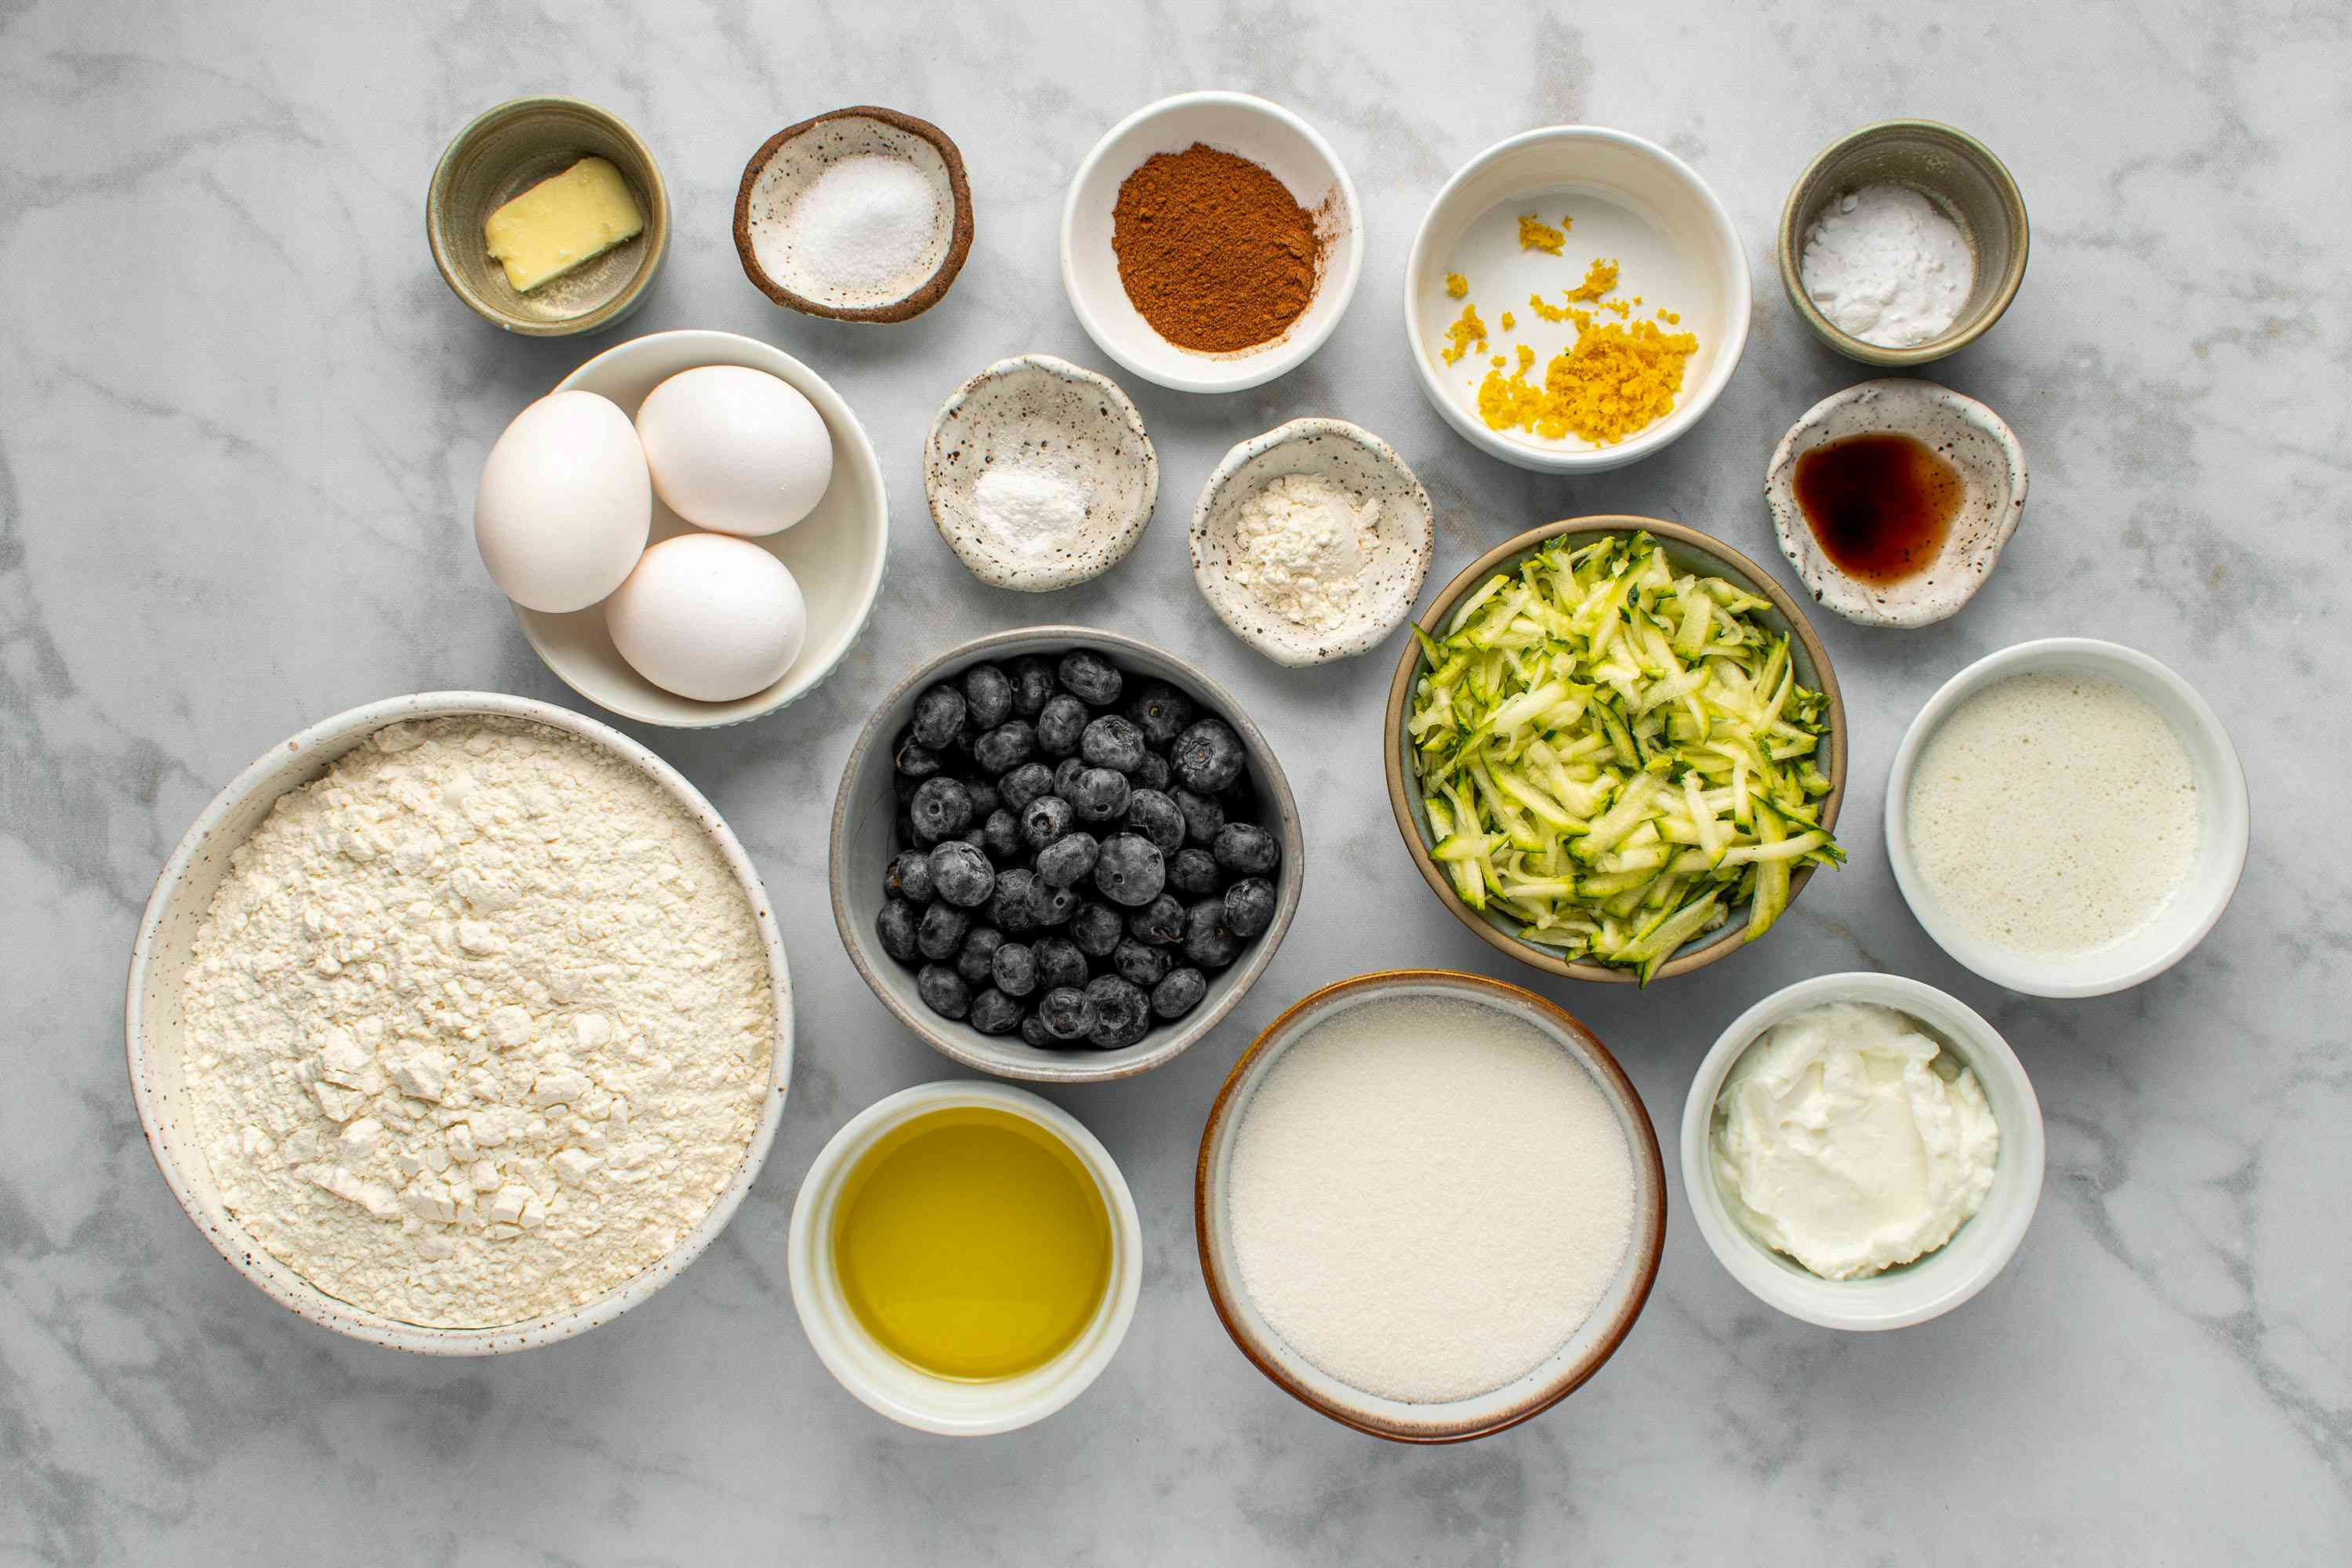 Blueberry and Zucchini Quick Bread ingredients